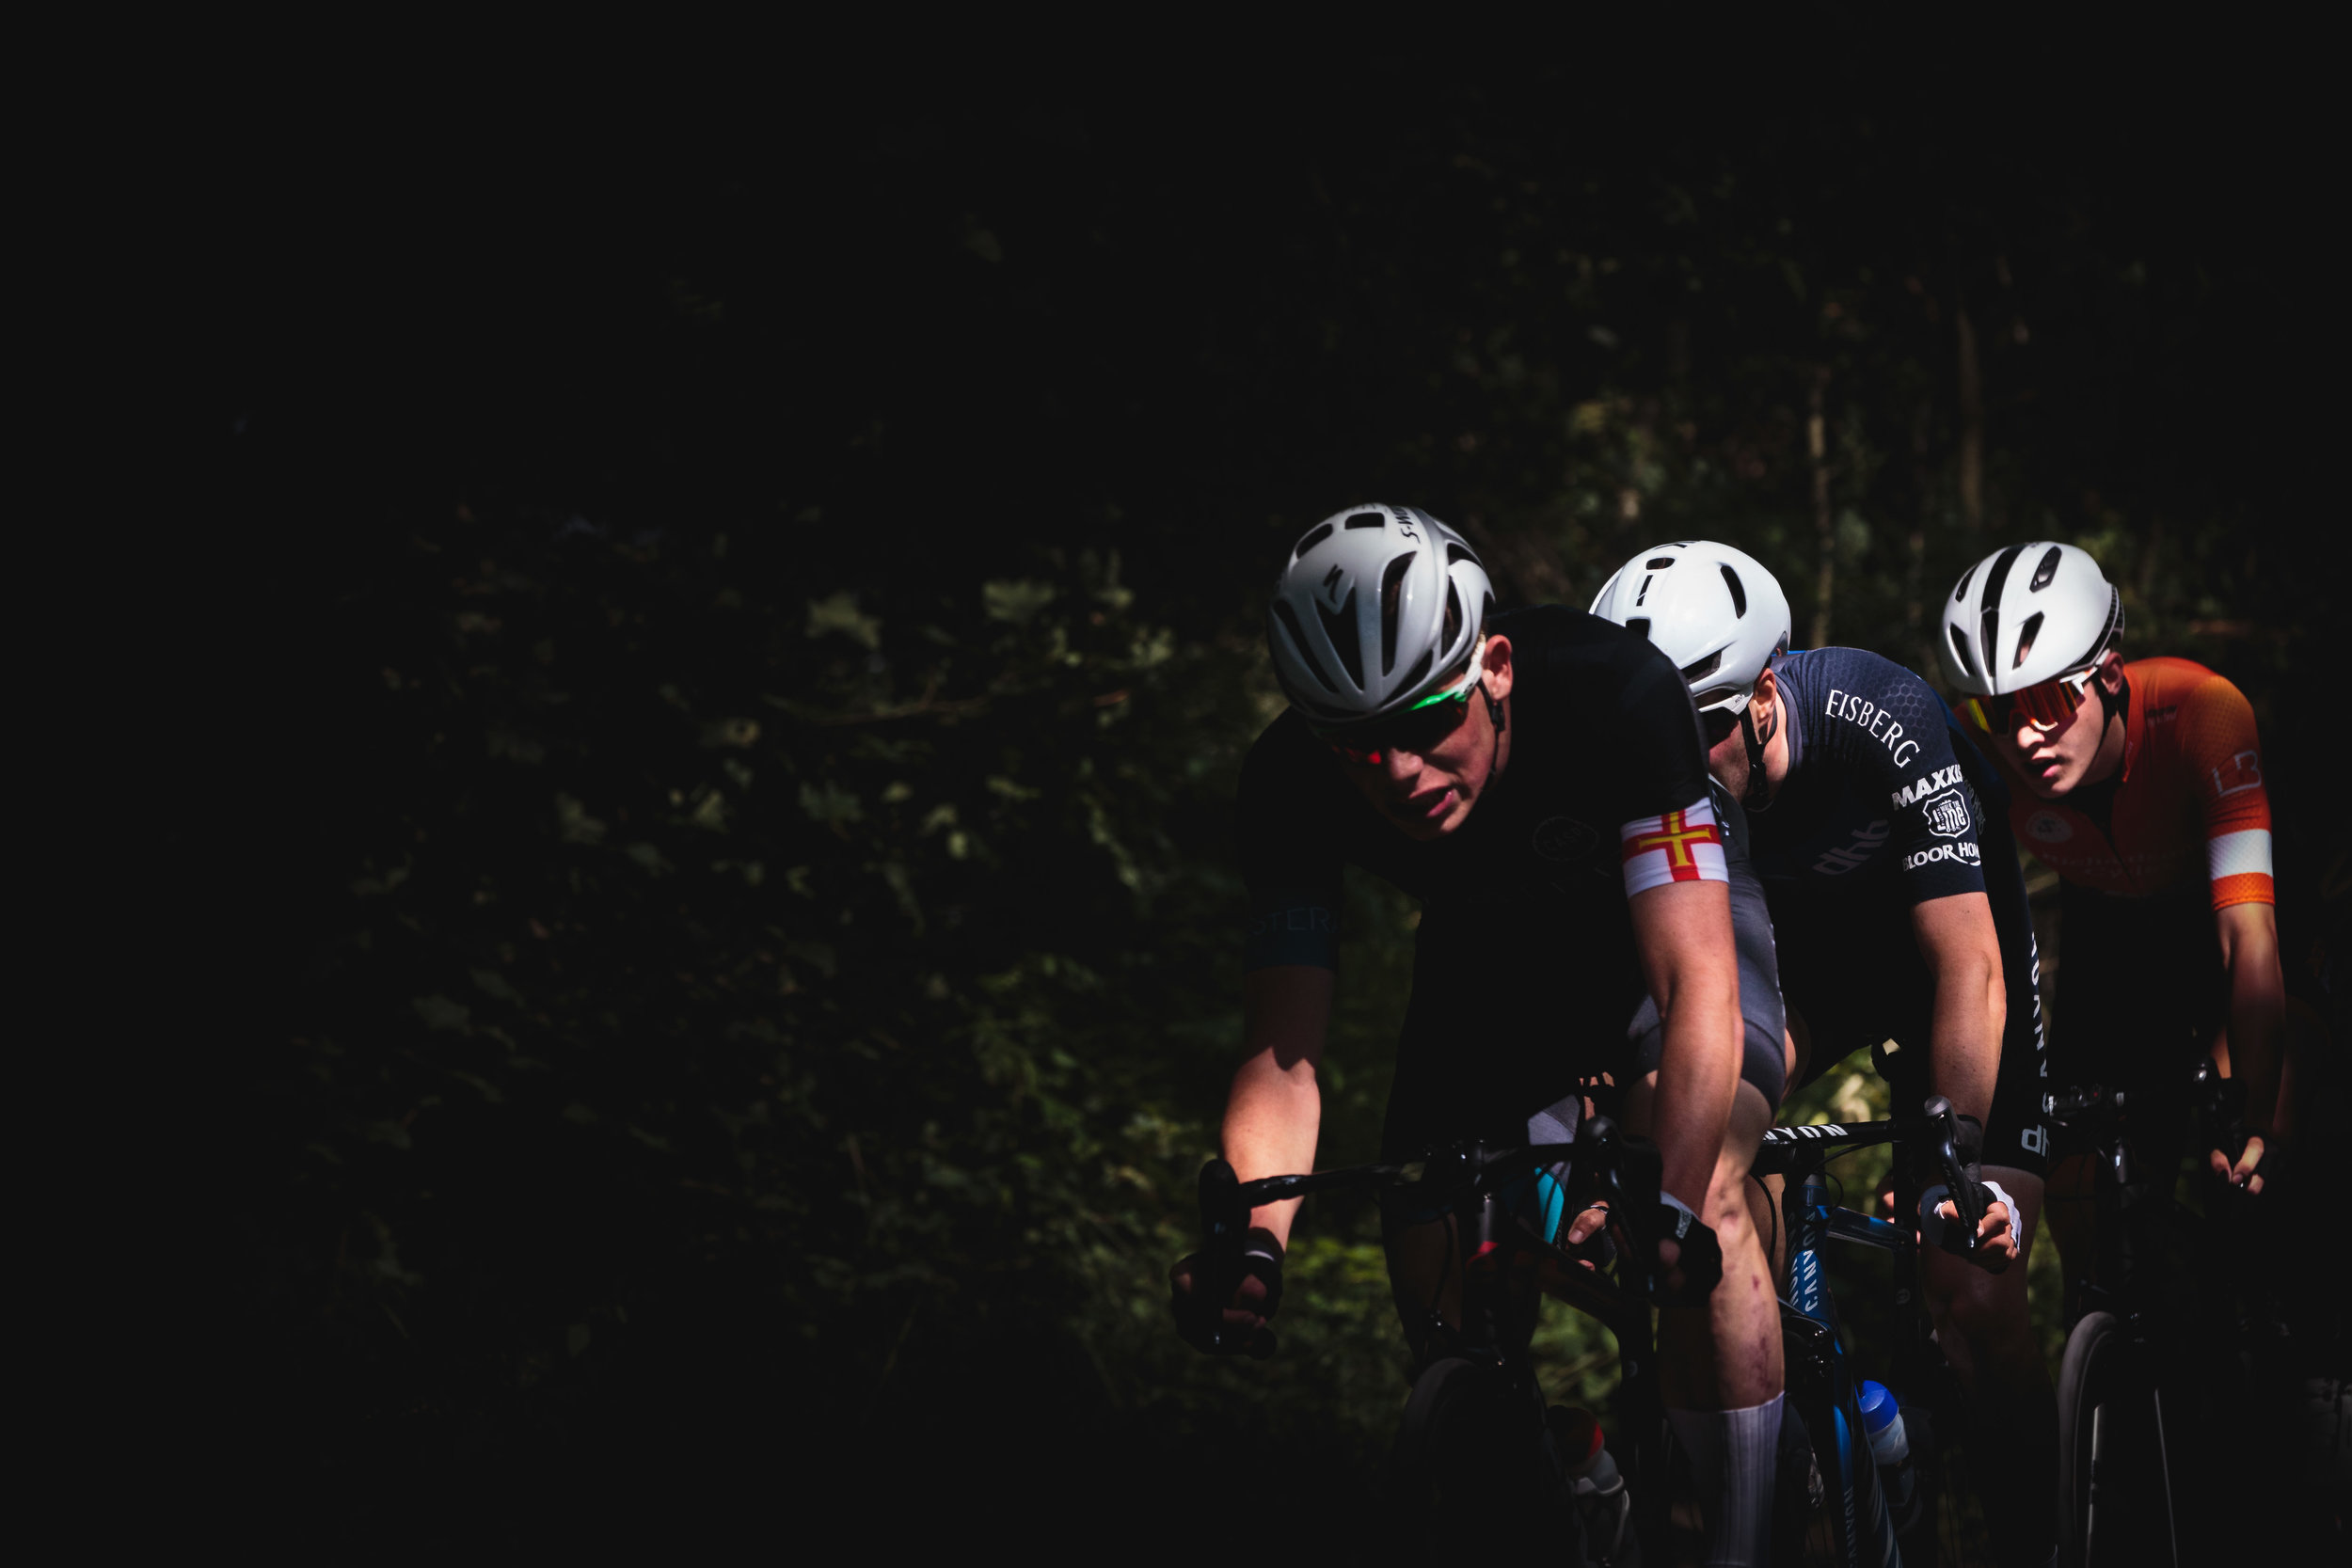 Playing with Light and Cyclists at a Bike Race